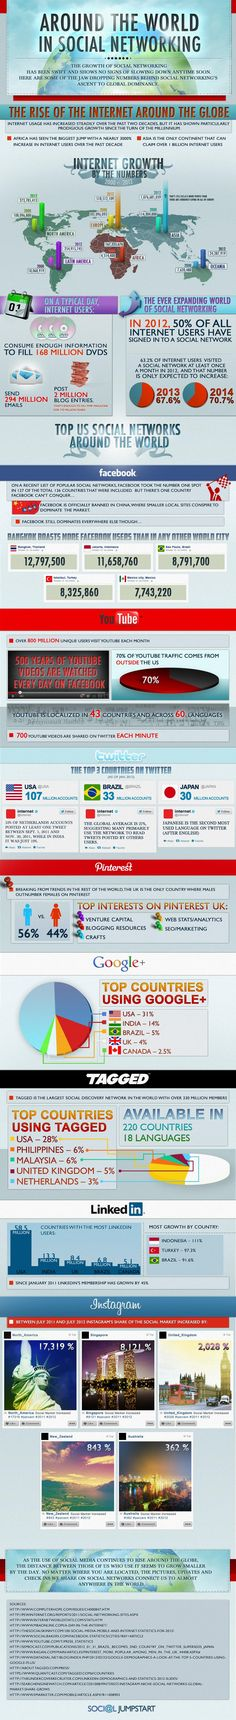 Social media is trending globally. Check out this infographic to learn about how quickly social media has become prominent around the world.